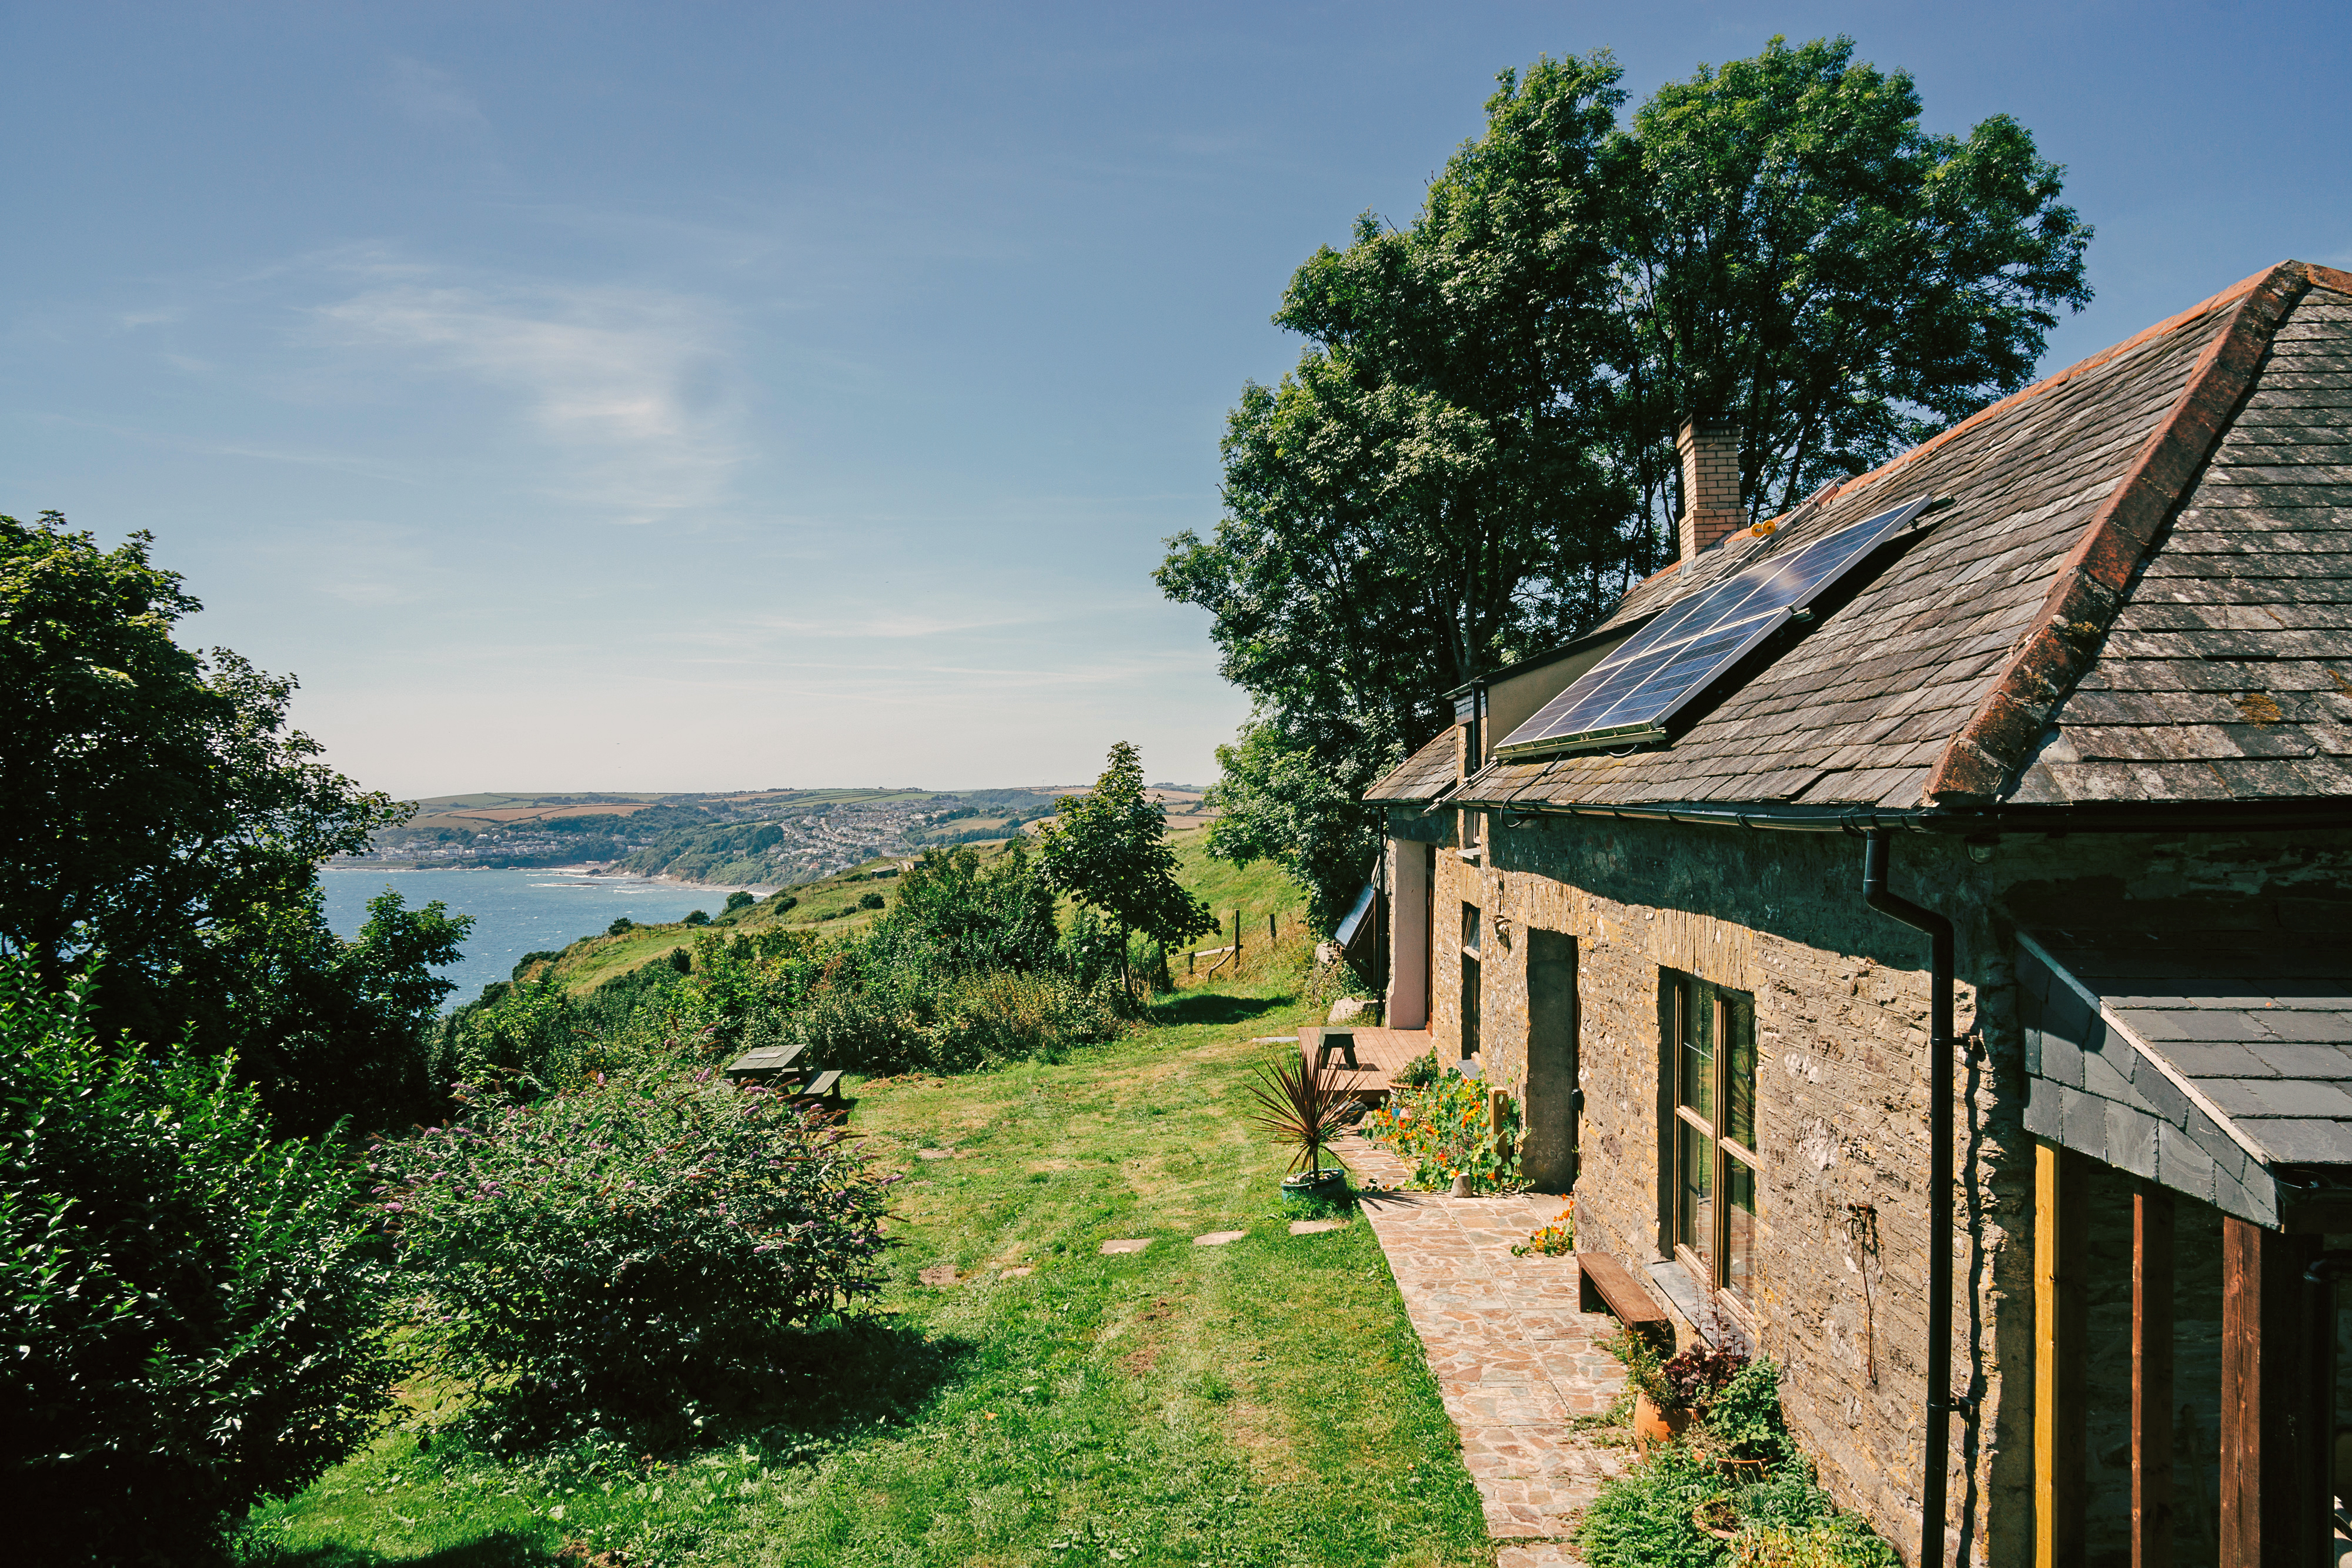 Exterior of The Old Coach House at Windsworth in Cornwall, looking out to sea